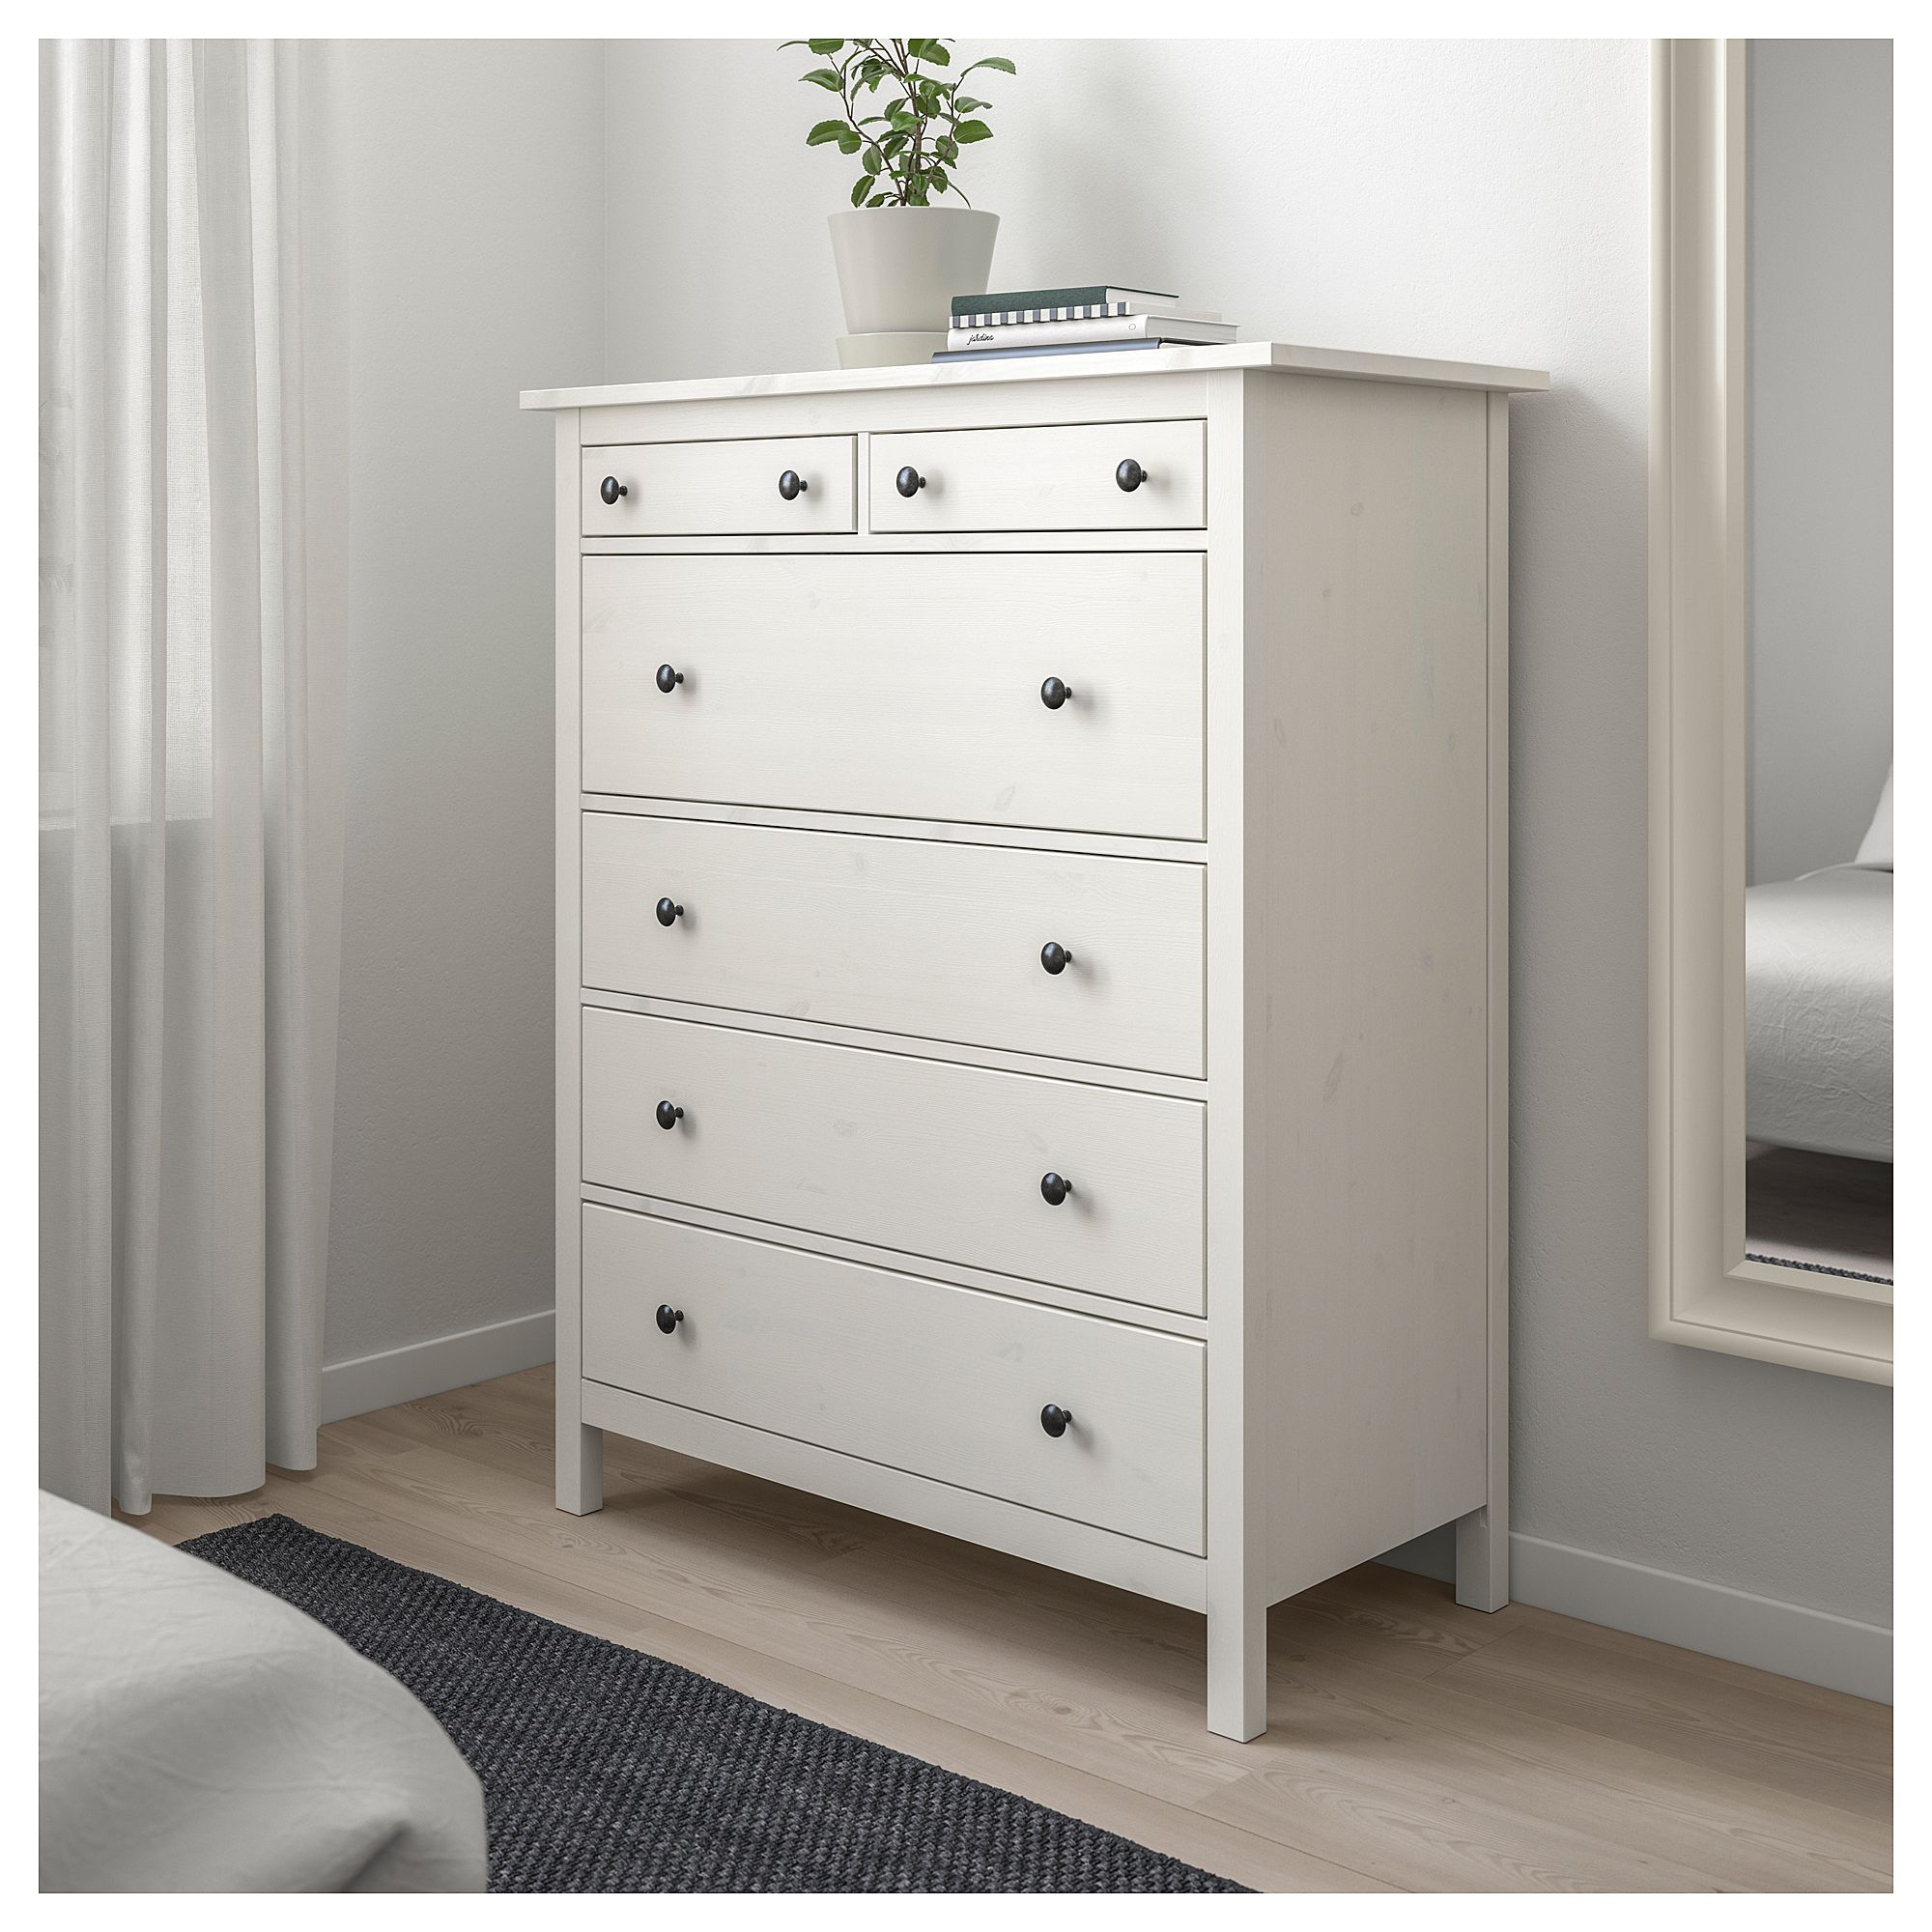 Ikea Kommode Antik Gebeizt Furniture And Home Furnishings House Decorations Ikea Chest